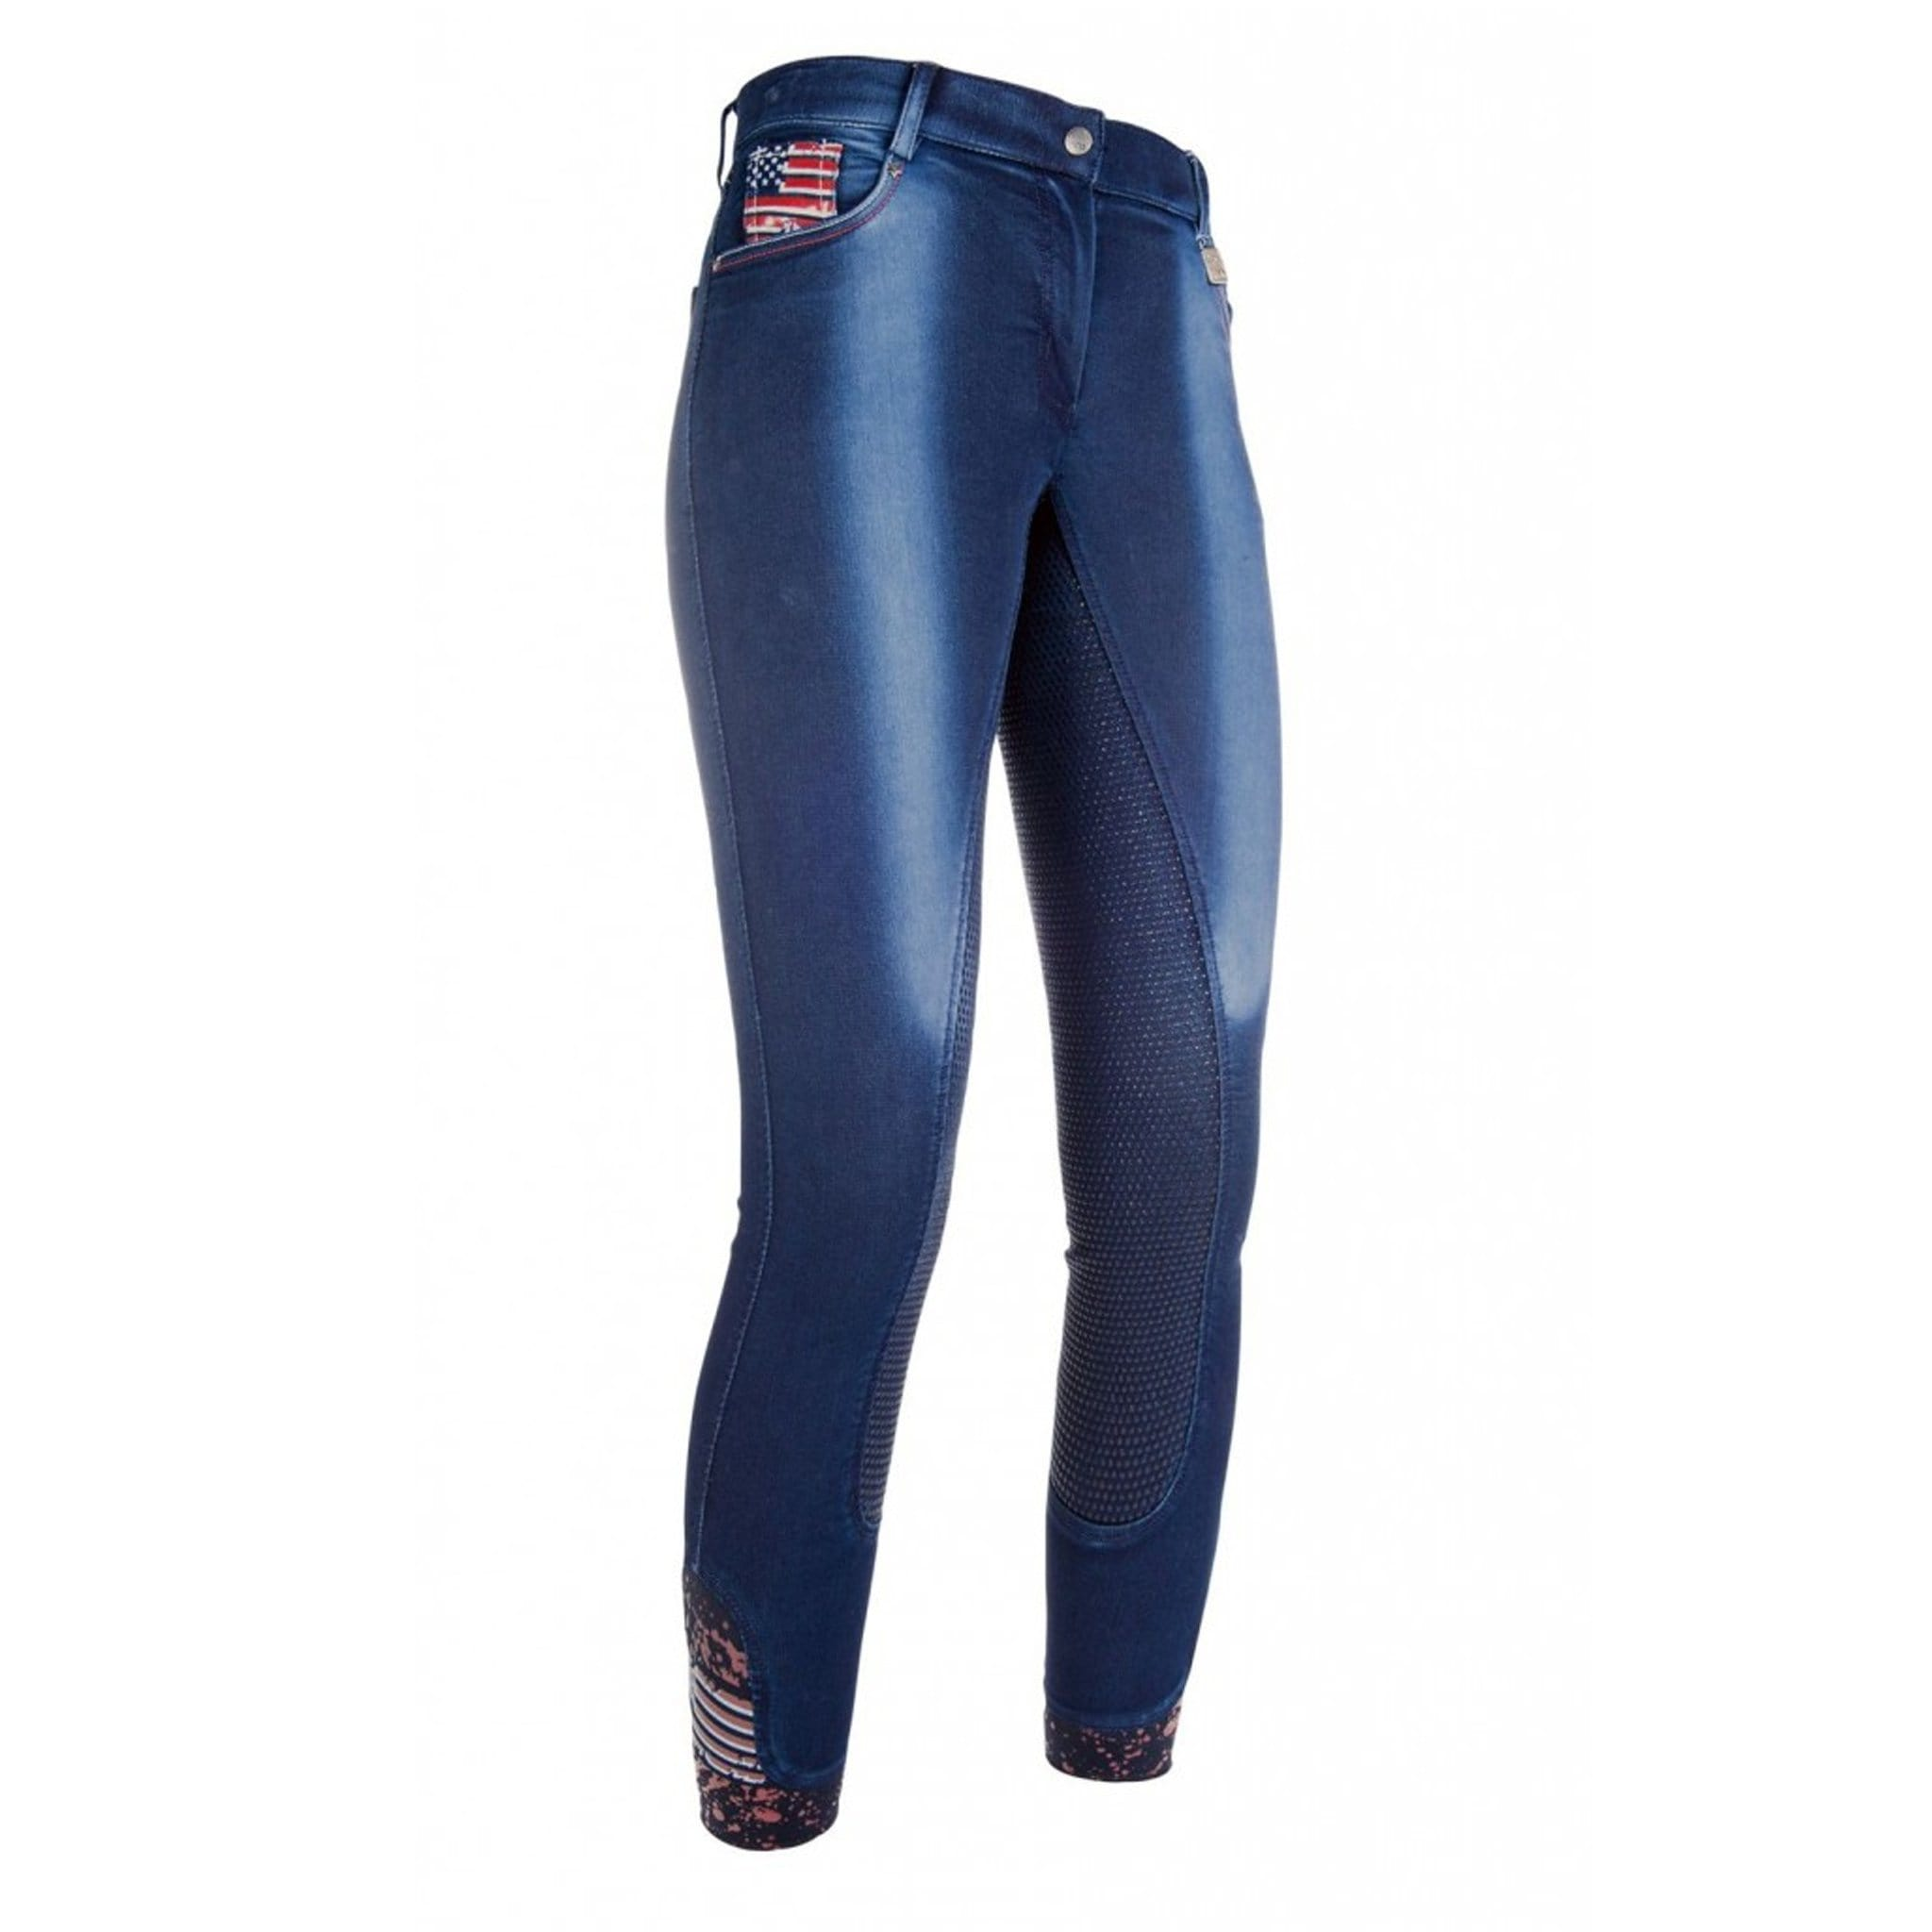 HKM USA Denim Silicone Full Seat Breeches Front 8572.